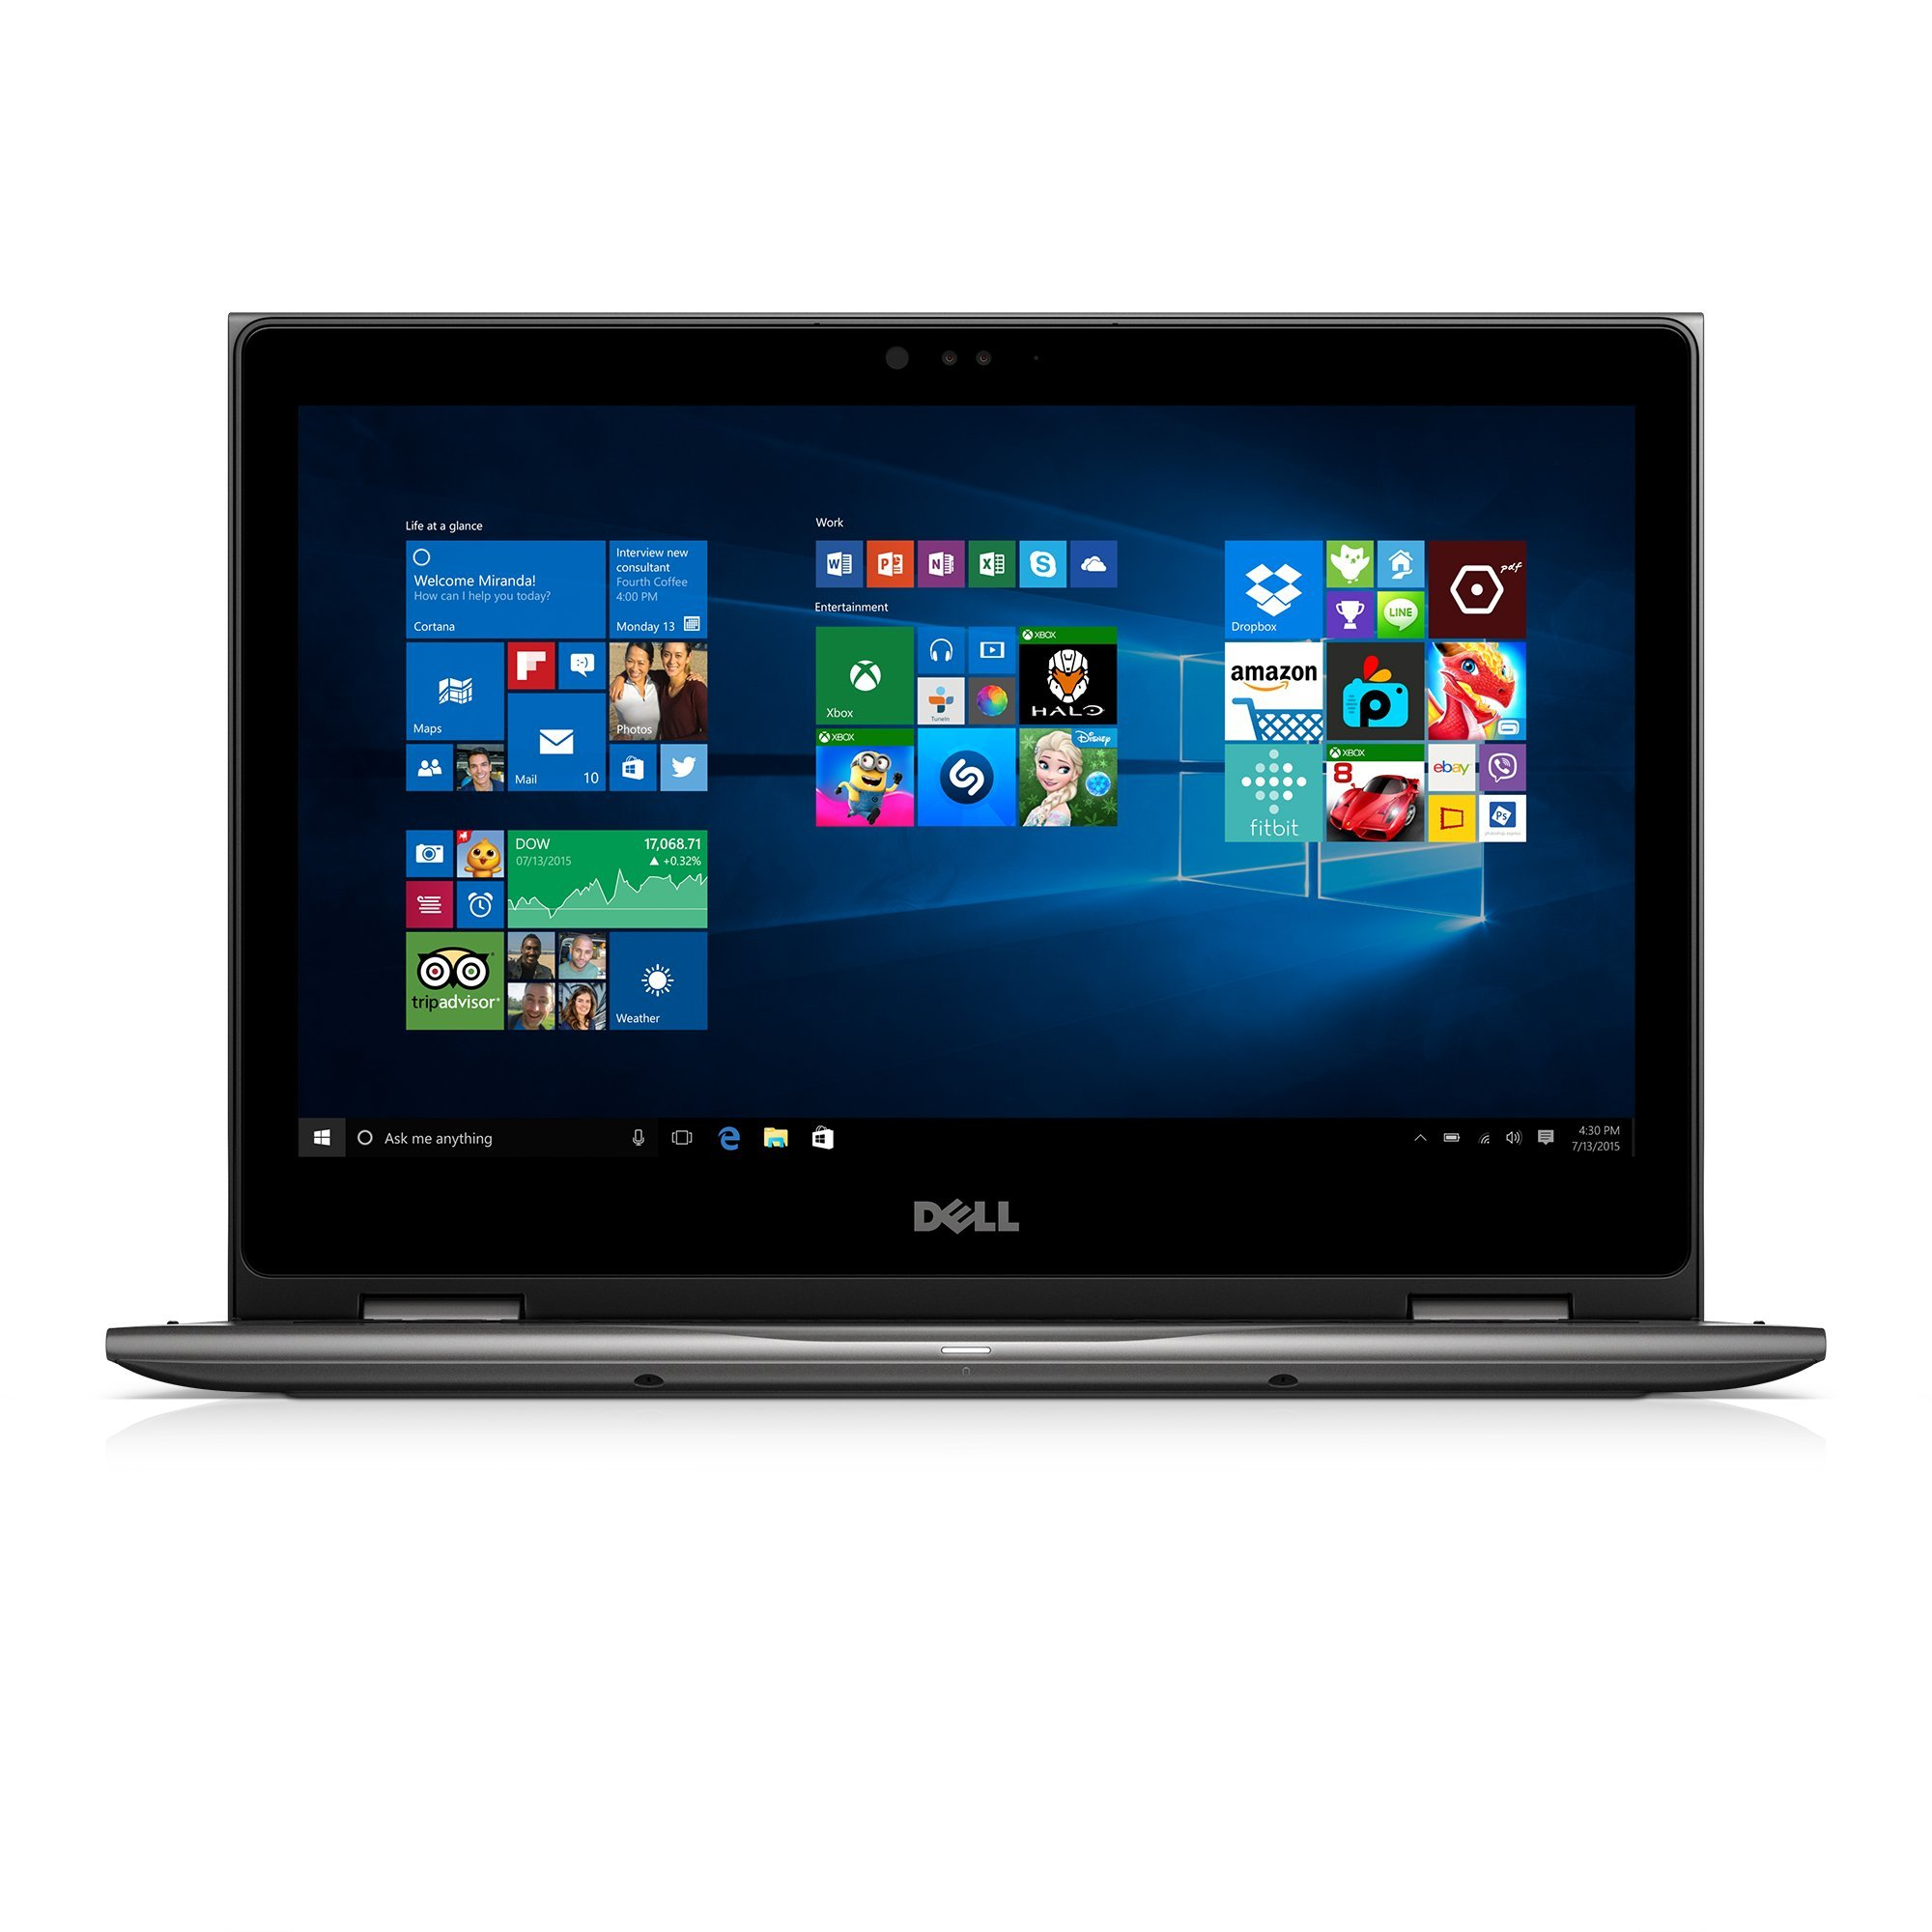 Dell i5368-10024GRY 13.3'' FHD 2-in-1 Laptop (Intel Core i7-6500U 2.5GHz Processor, 8 GB RAM, 256 GB SDD, Windows 10 Microsoft Signature Image) Gray